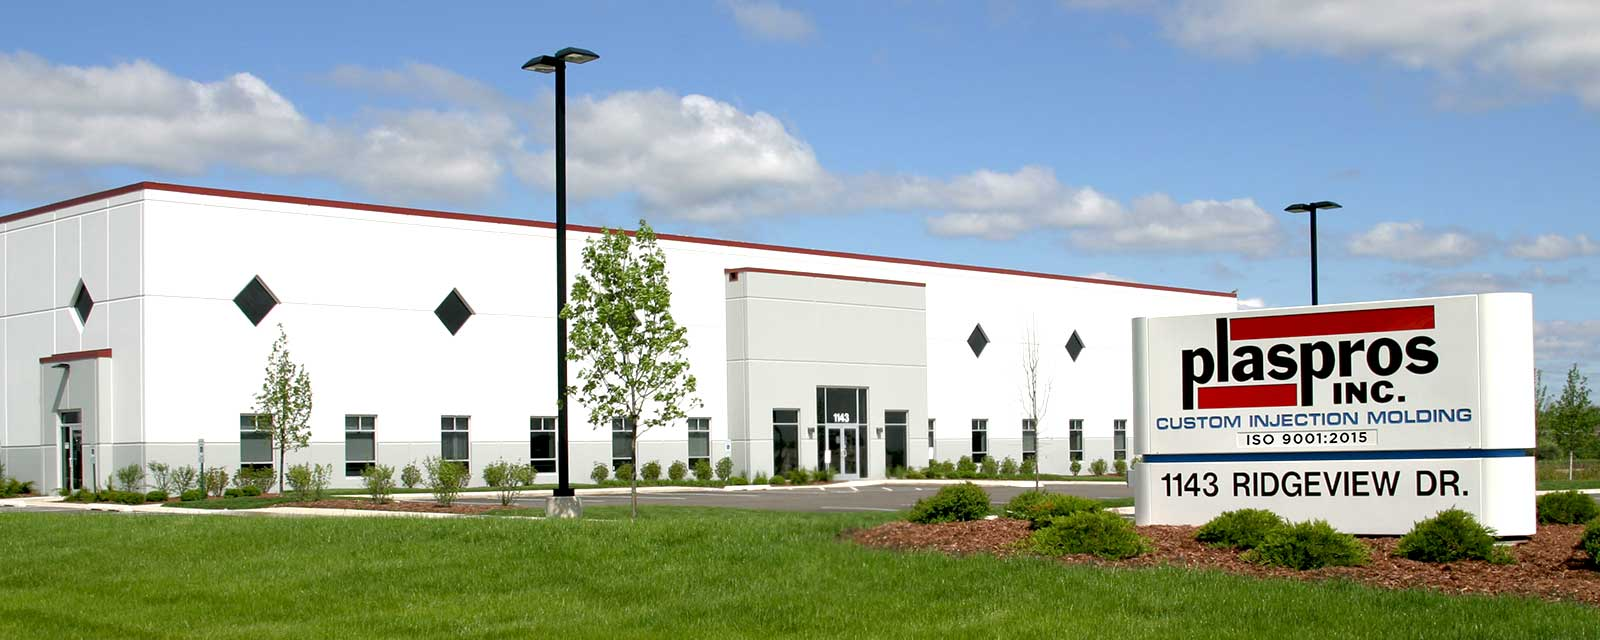 Plaspros headquarters in McHenry, IL